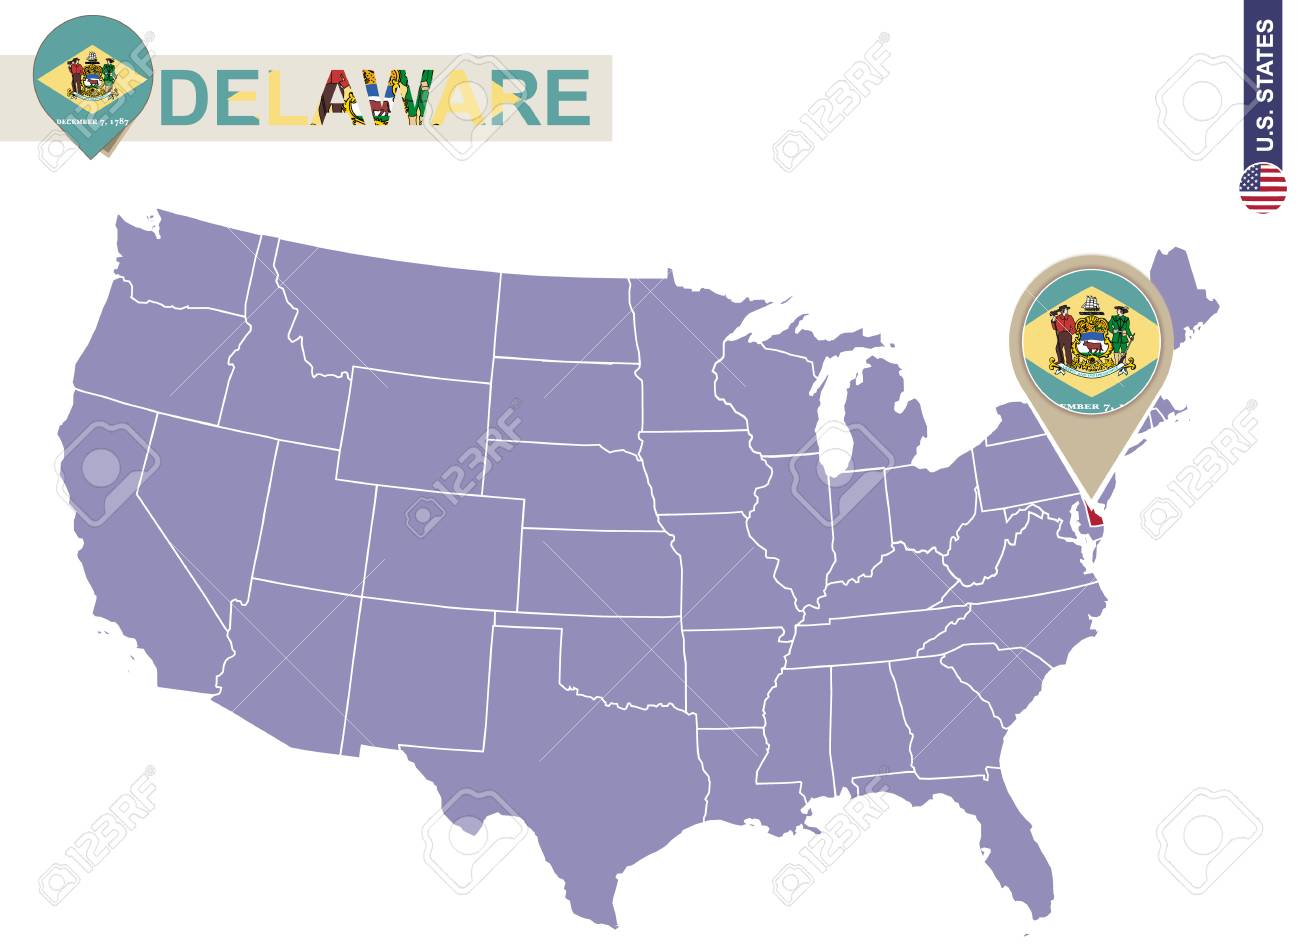 Delaware State On Usa Map Delaware Flag And Map Us States Royalty - Delaware-on-a-us-map